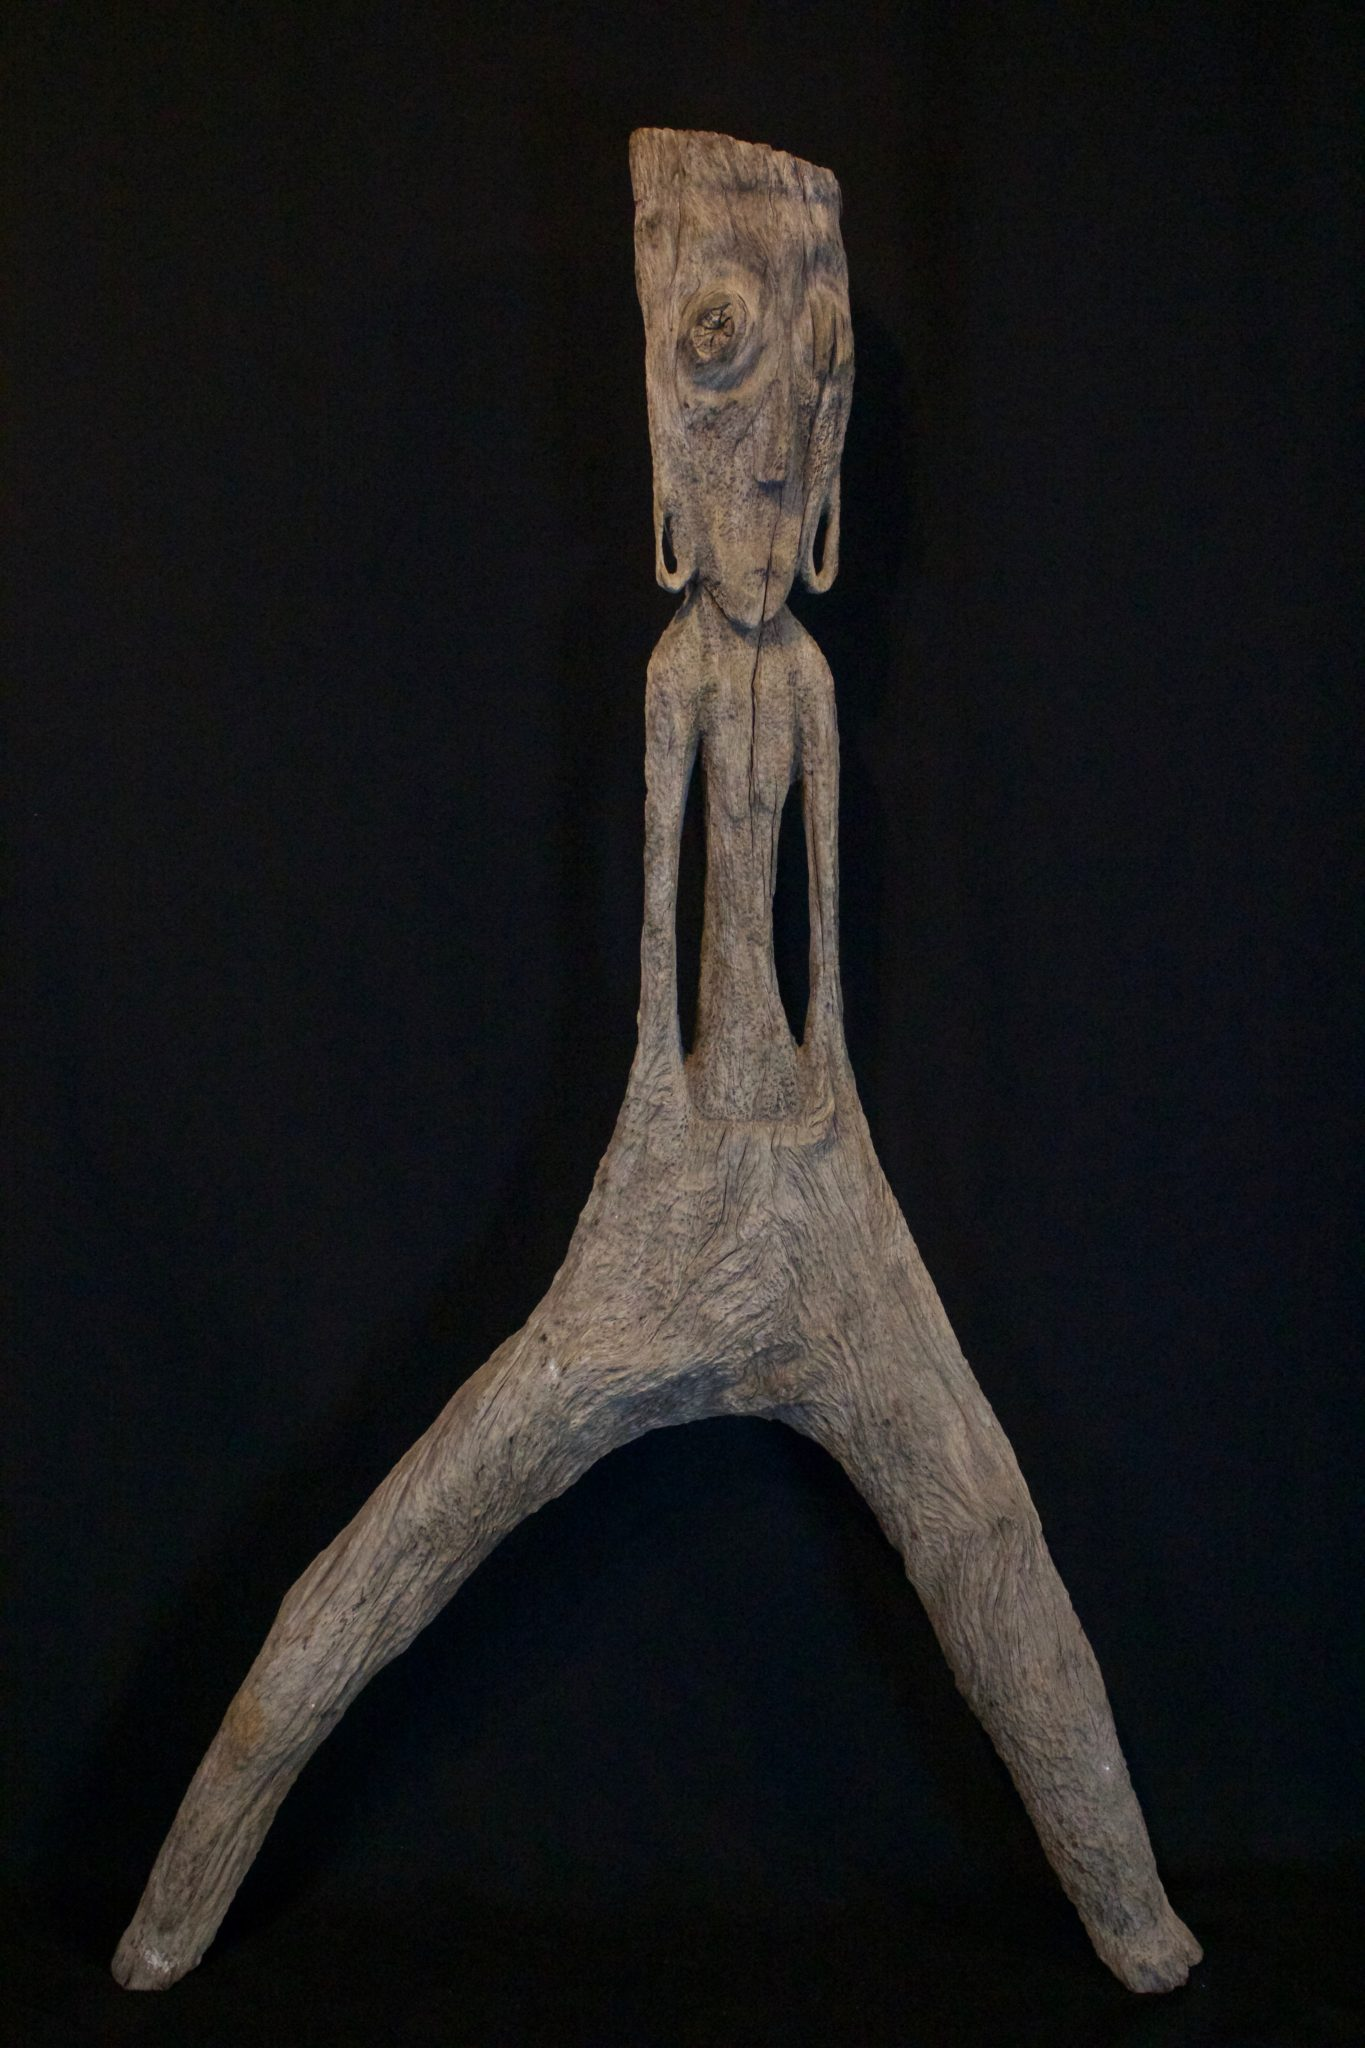 "Magic Protection Figure Kalimantan, Borneo, Indonesia, Dayak tribe, Early to mid 19th c, Ironwood, patinated with use and age. Protection from harmful spirits. 35"" x 21 ½"" 8"", $1600."